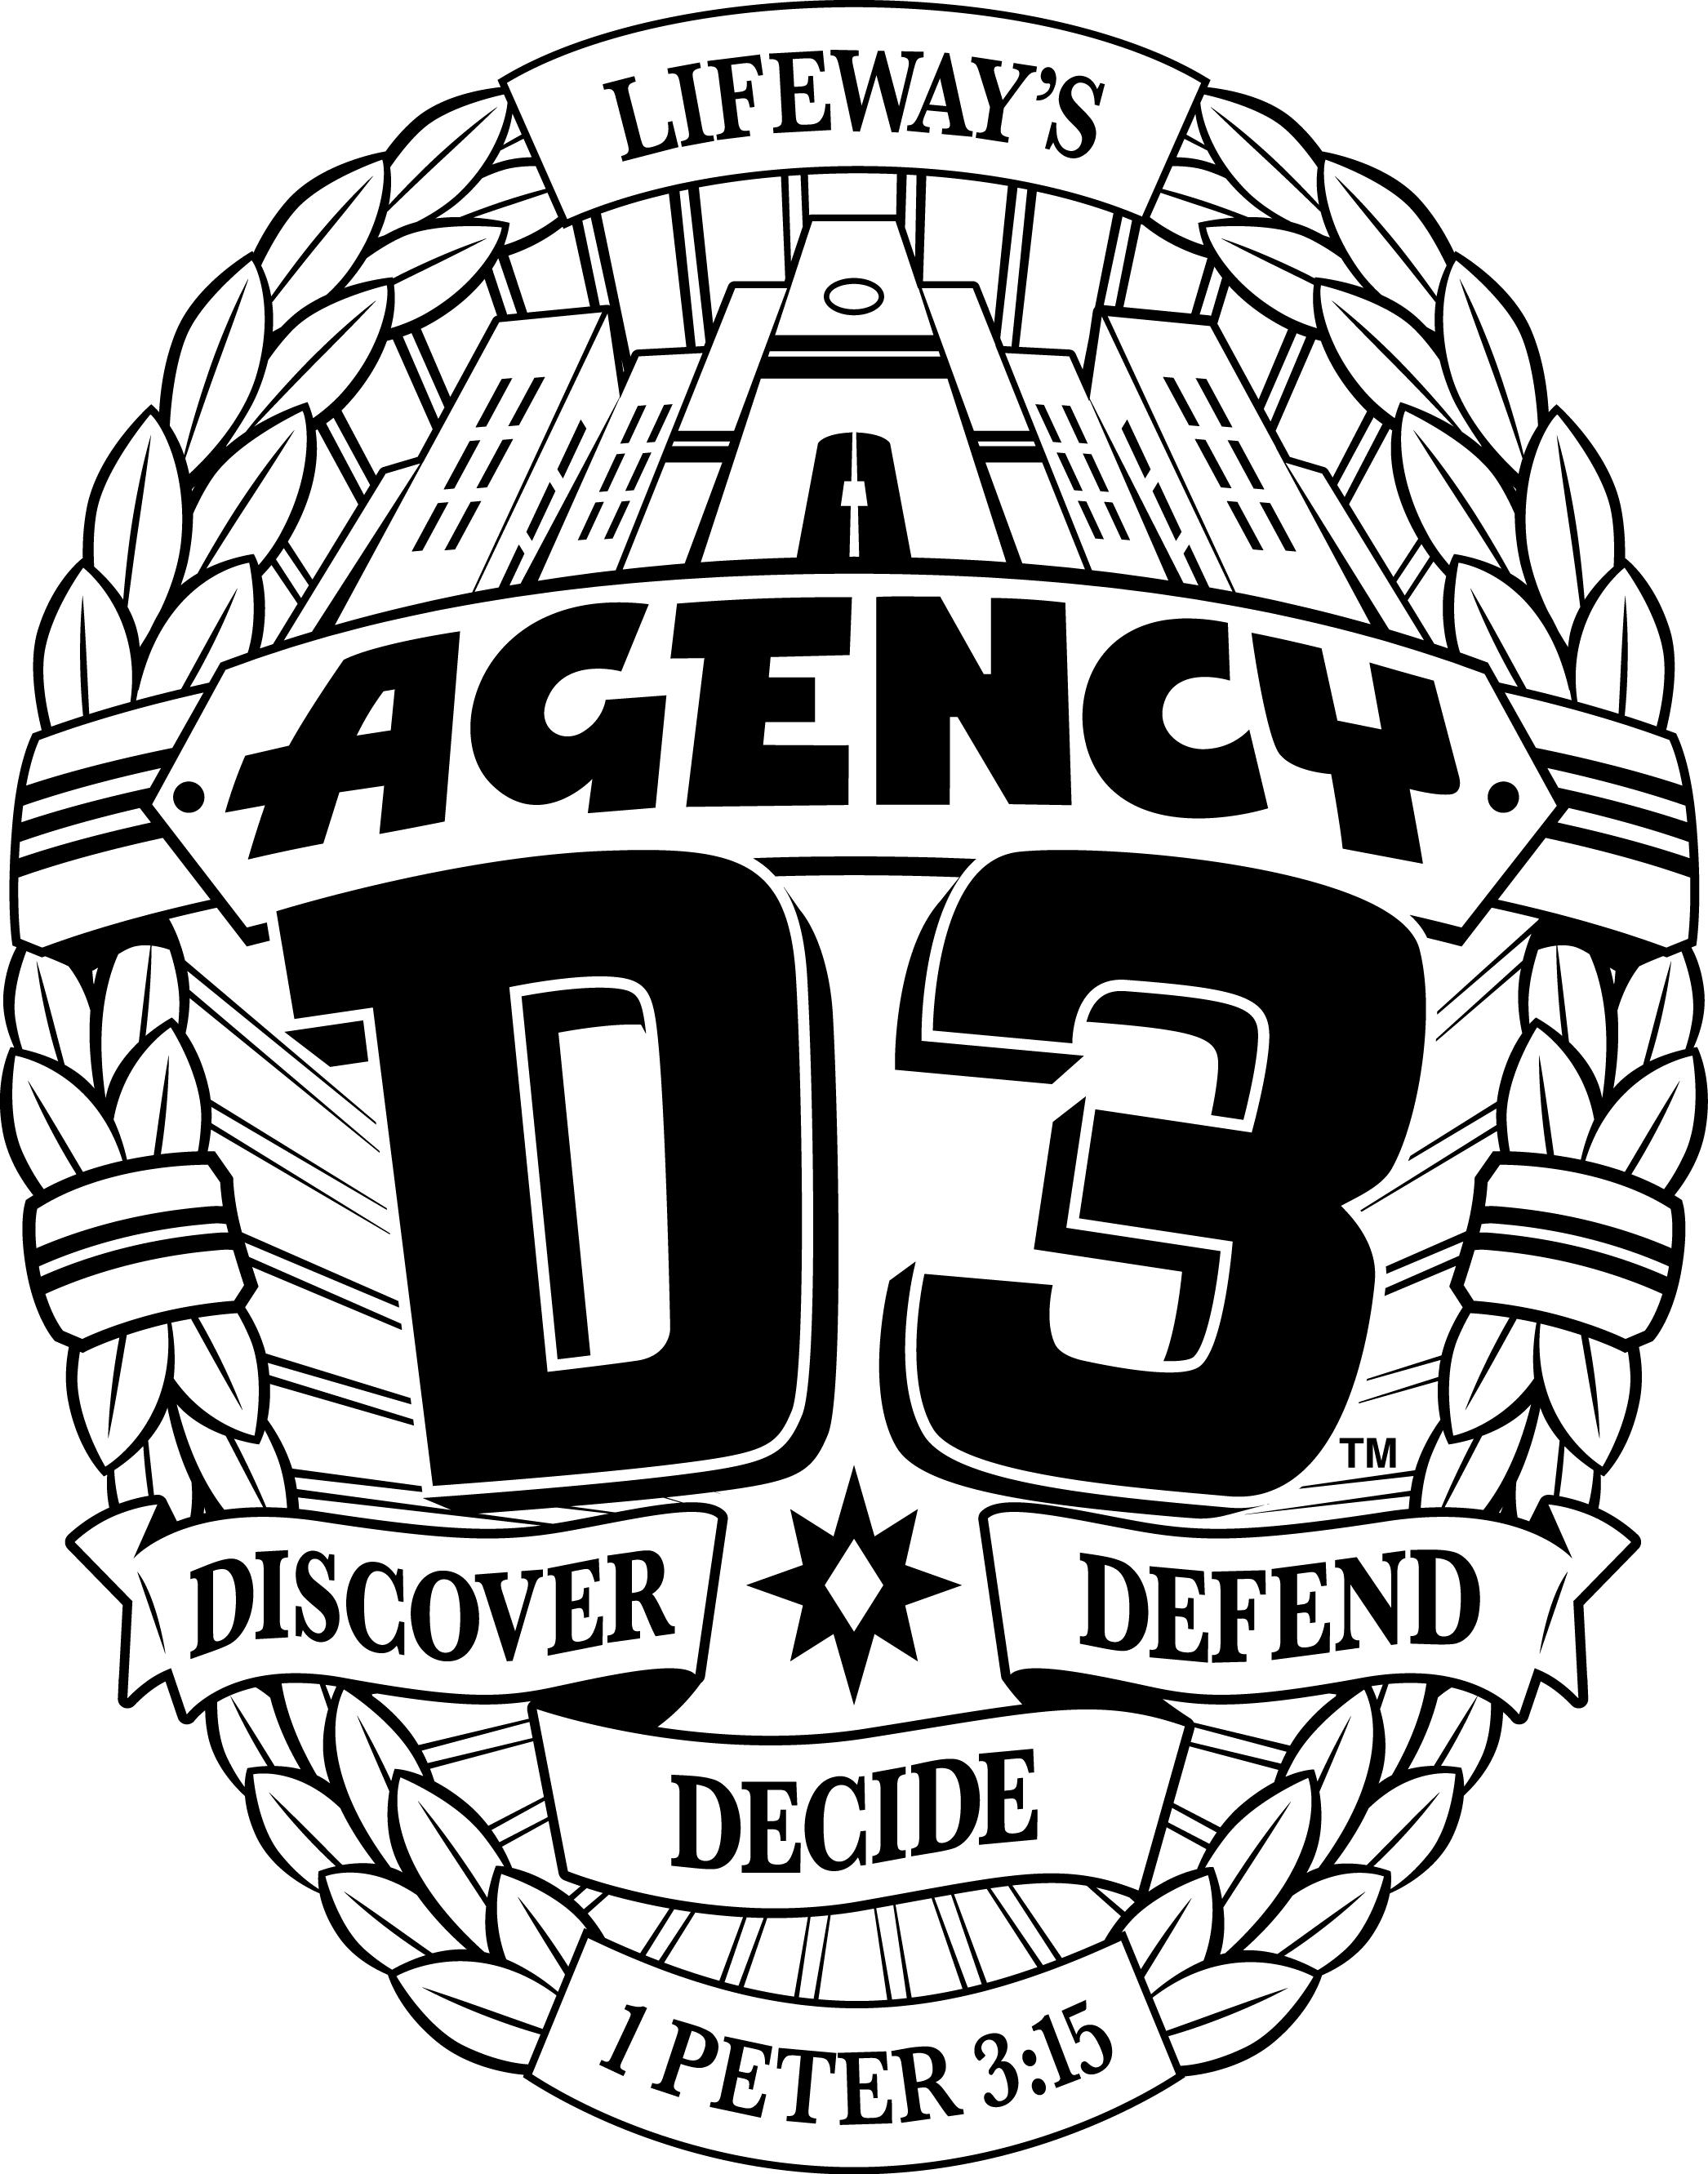 Agency d vbs pinterest. Detective clipart truth